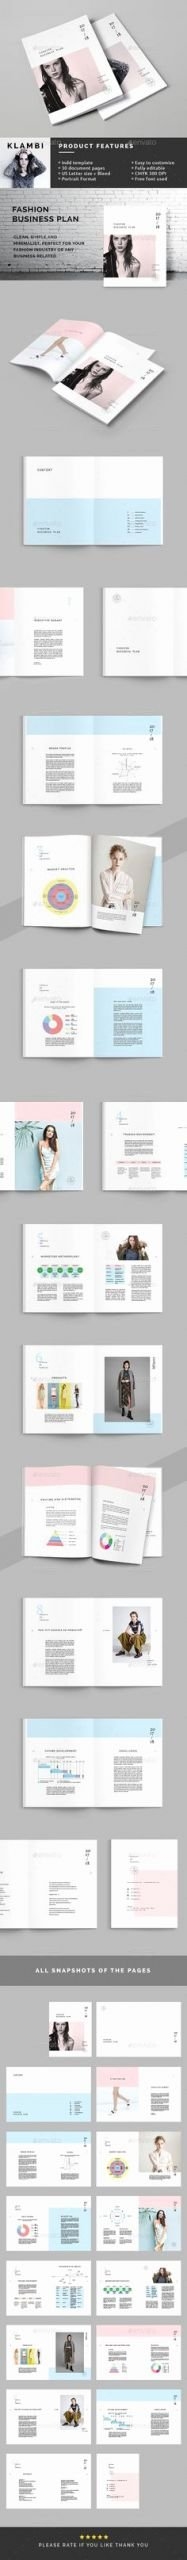 Clothing Line Business Plan Template Awesome How to Start Your Own Clothing Line From Scratch and